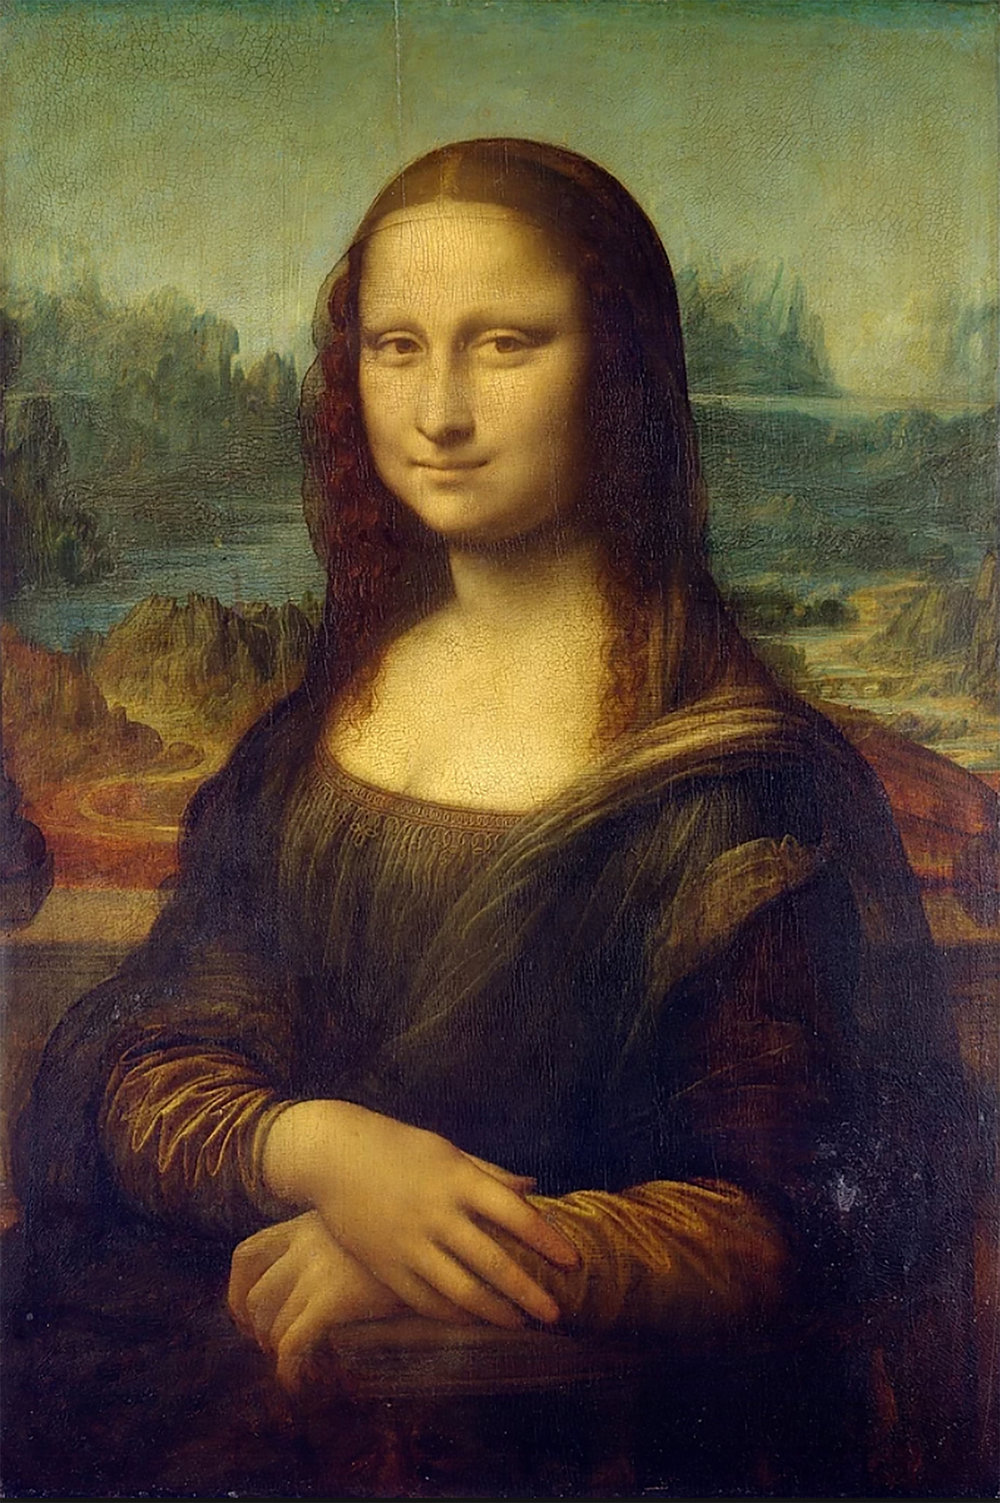 Mona Lisa Screen Shot 2019-01-30 at 3.41.31 PM.jpg